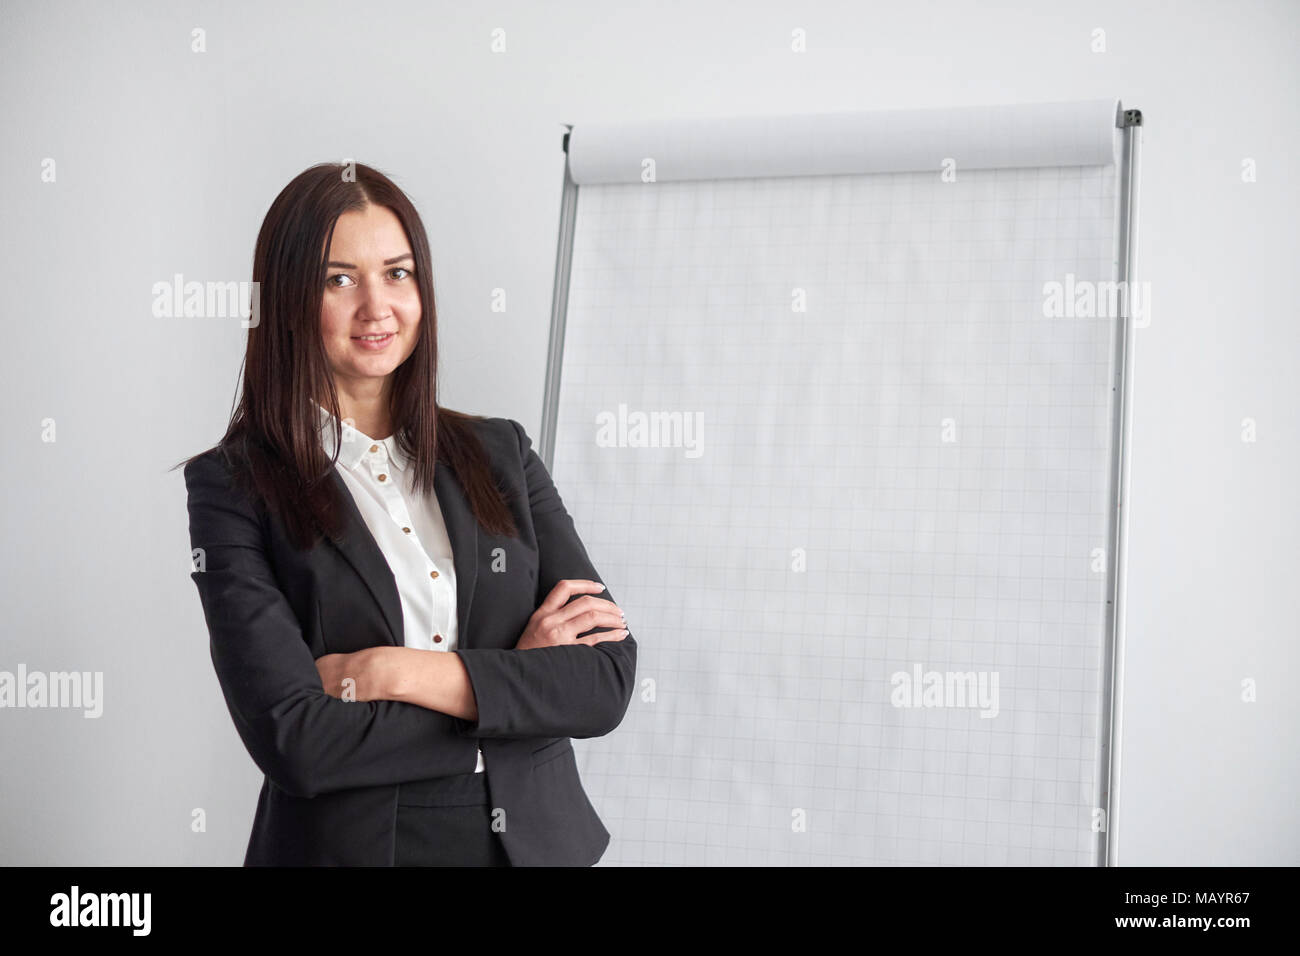 Portrait of young smiling businesswoman standing nearflipchart in office. - Stock Image